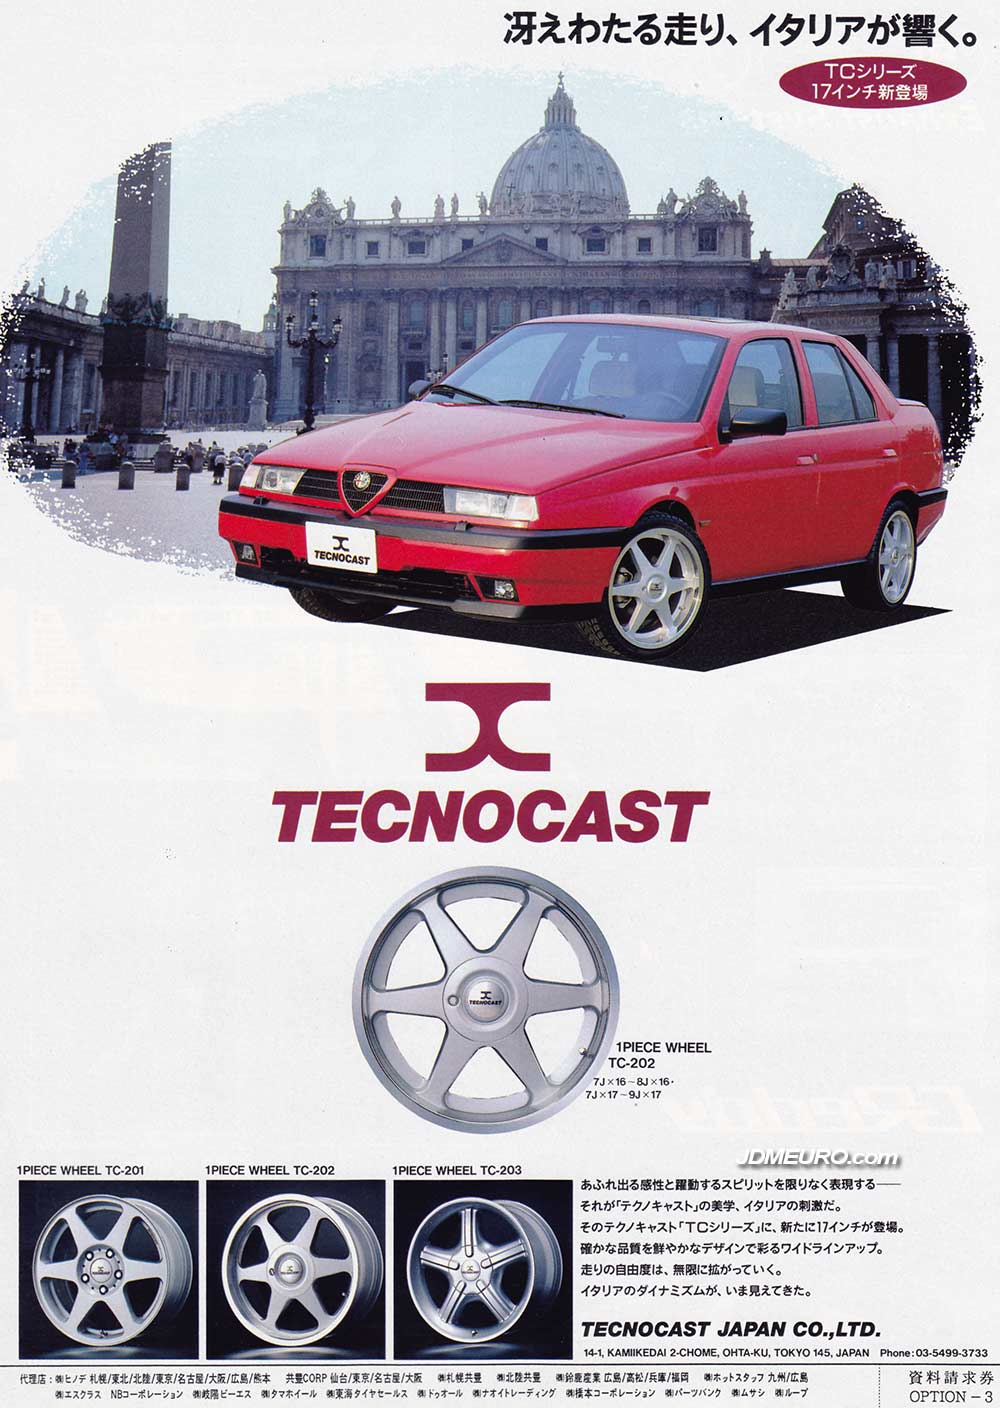 The Tecnocast TC-202 are JDM wheels marketted towards European Cars. The Tecnocast TC-202 feature a 6 spoke design with lug nuts covered by a center cap; and one piece aluminum construction. The Tecnocast TC-201 also feature 6 spoke construction, but with exposed lug nuts. Pictured is an Alfa Romeo 155 with the Tecnocast TC-202 mounted.